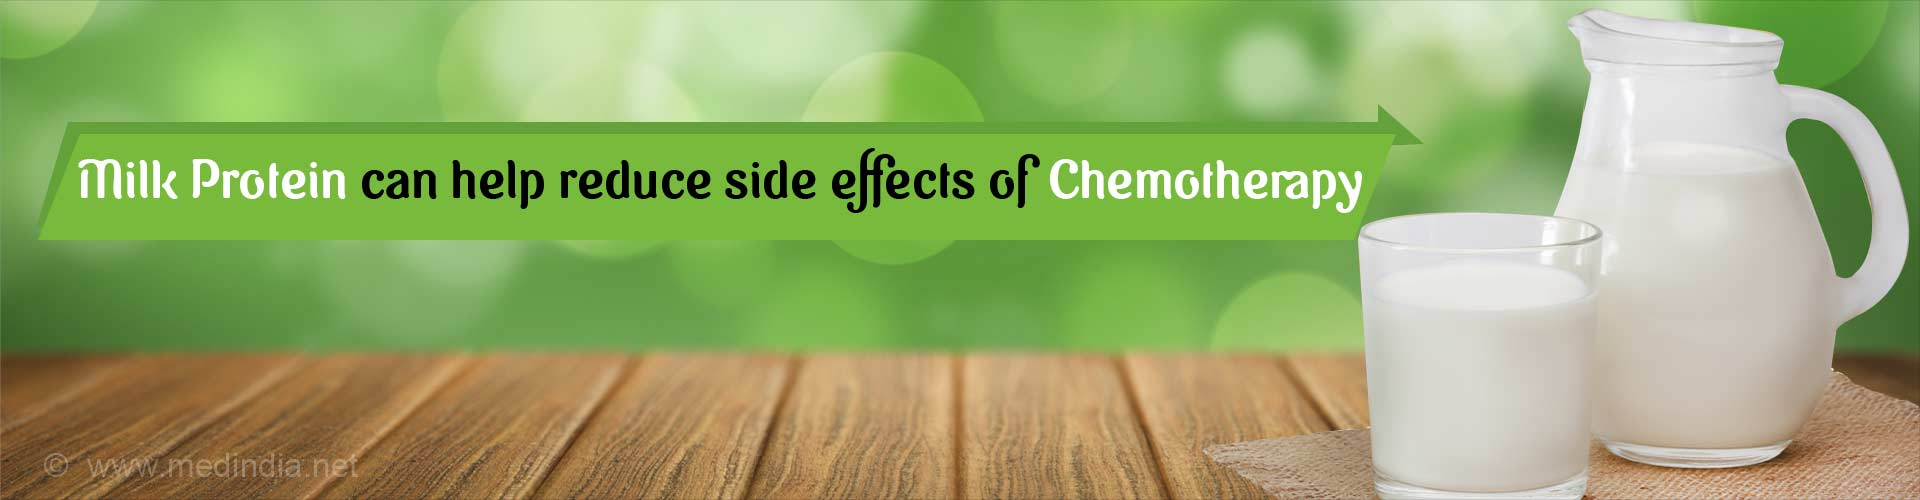 Milk Protein Helps Reduce Chemotherapy Side Effects